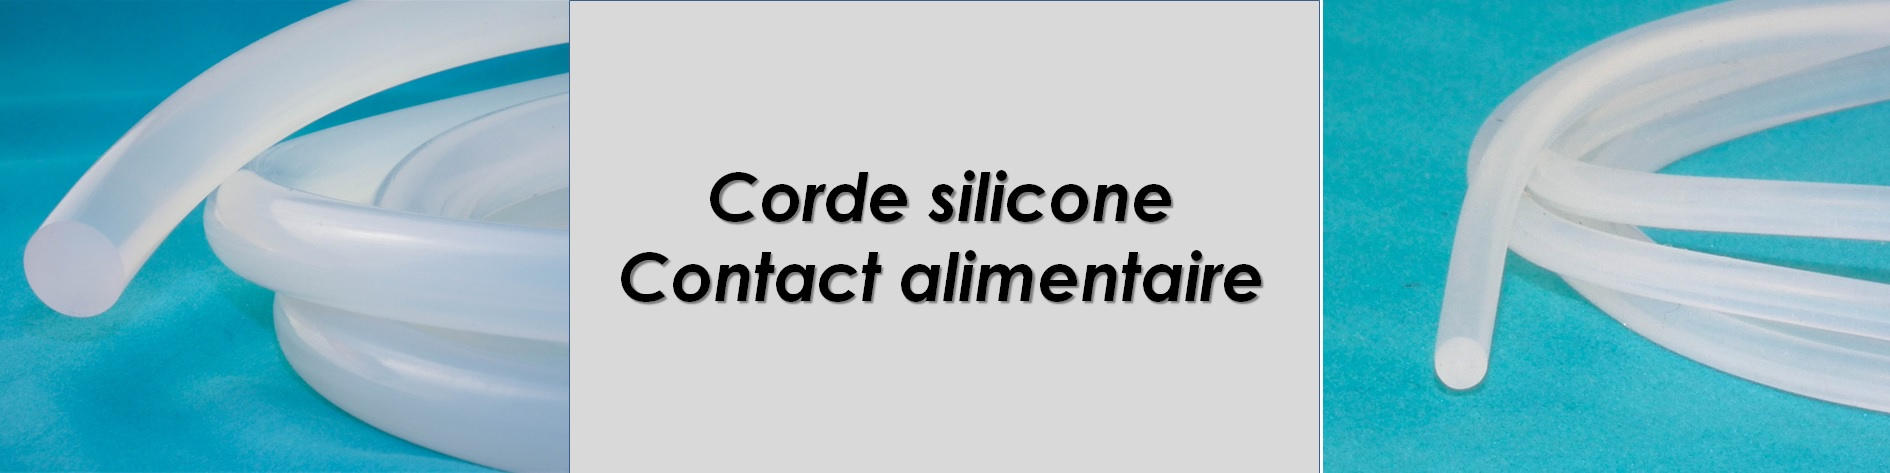 Corde ronde translucide Contact alimentaire